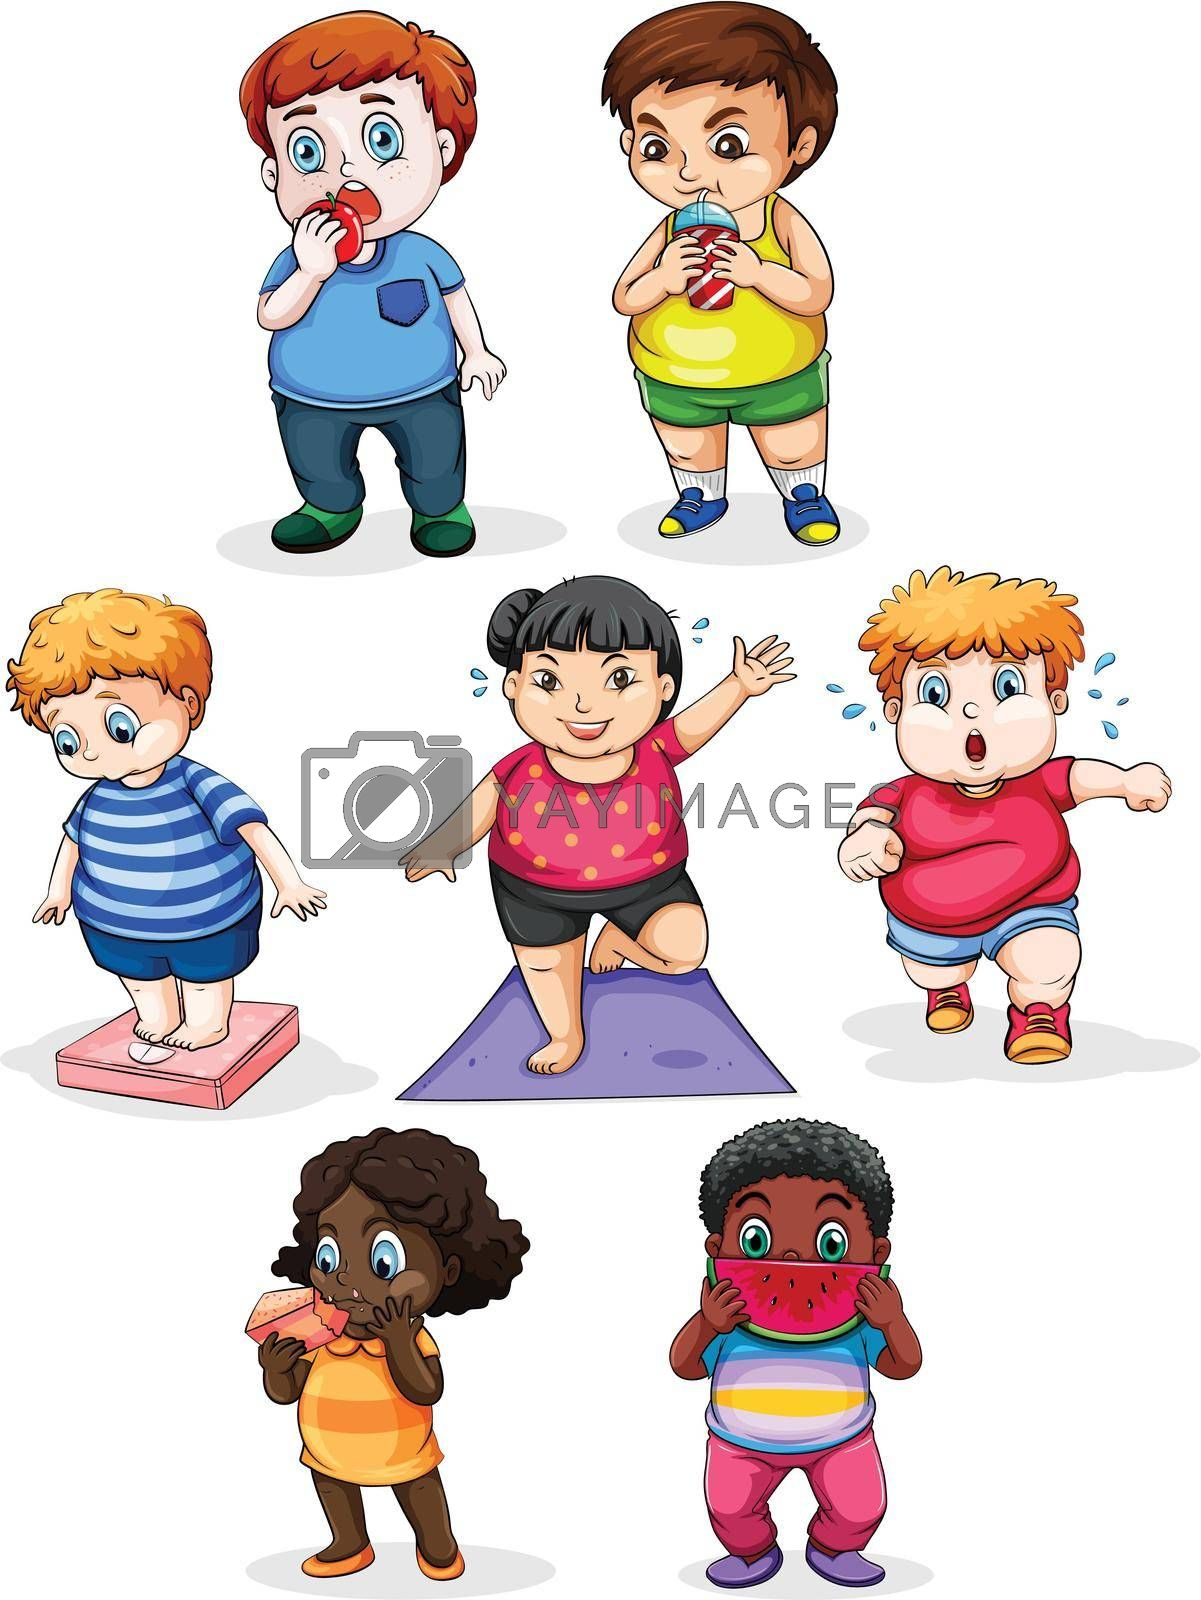 Royalty free image of Fat people by iimages